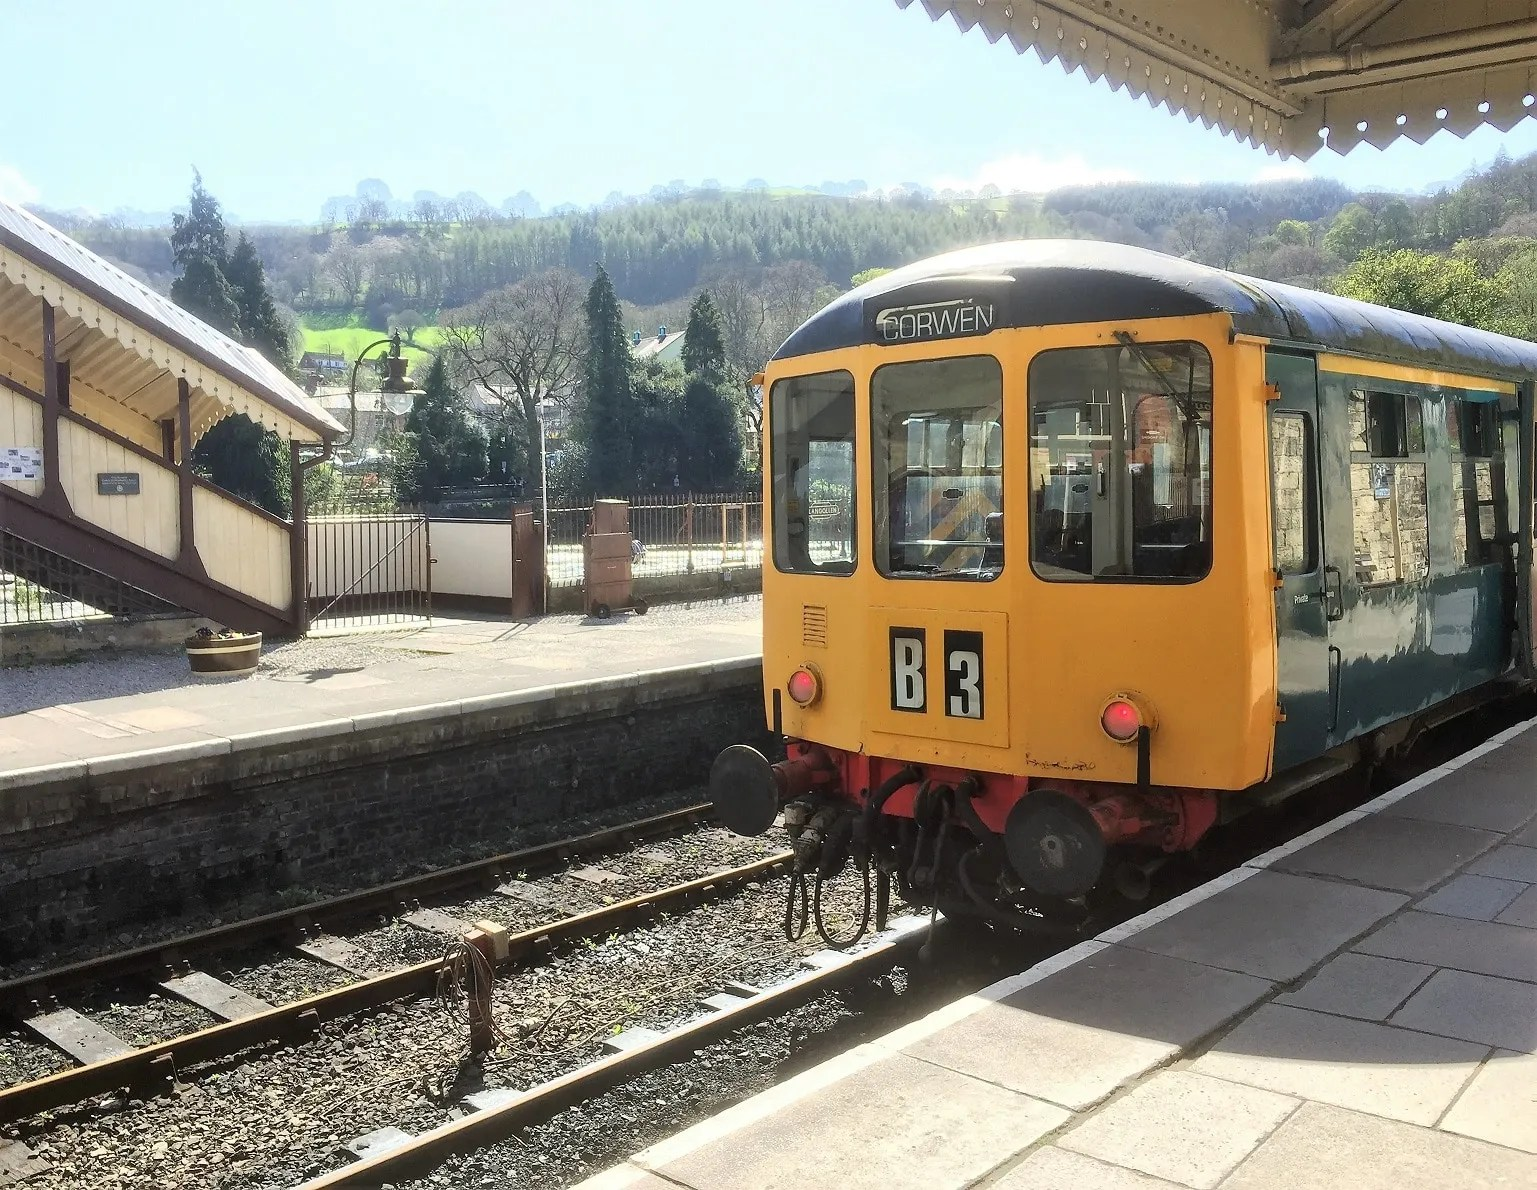 Birmingham Rail & Carriage Works BR Class 104 in Llangollen Railway Station